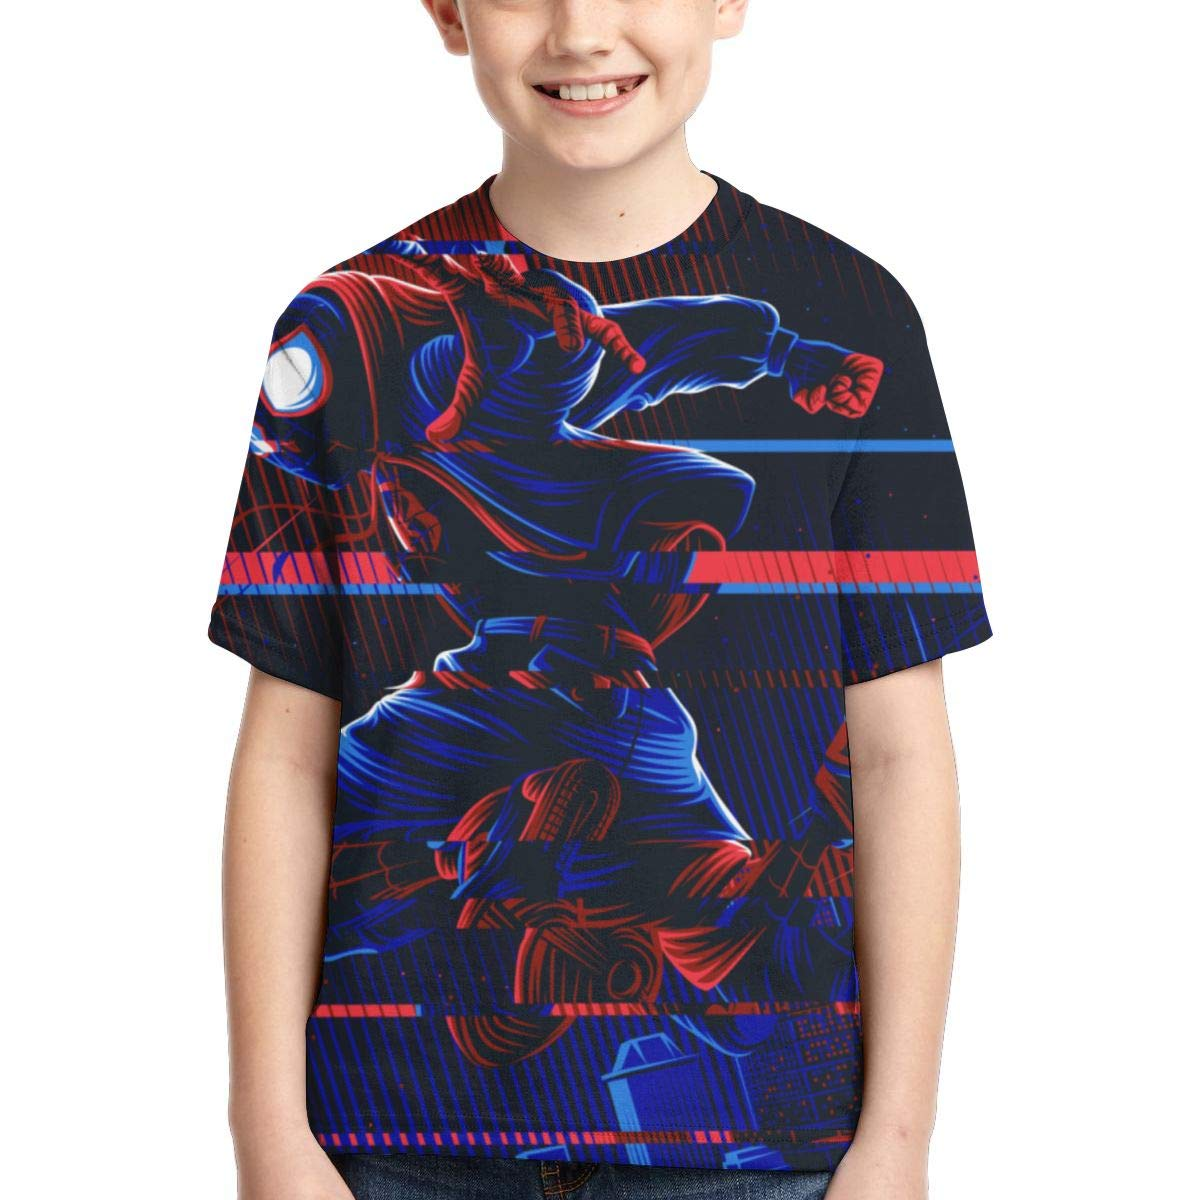 FrancSan Spiderman Into The Verse Boys Short Sleeve T-Shirt Kids Graphic Tops Tee Summer Shirts